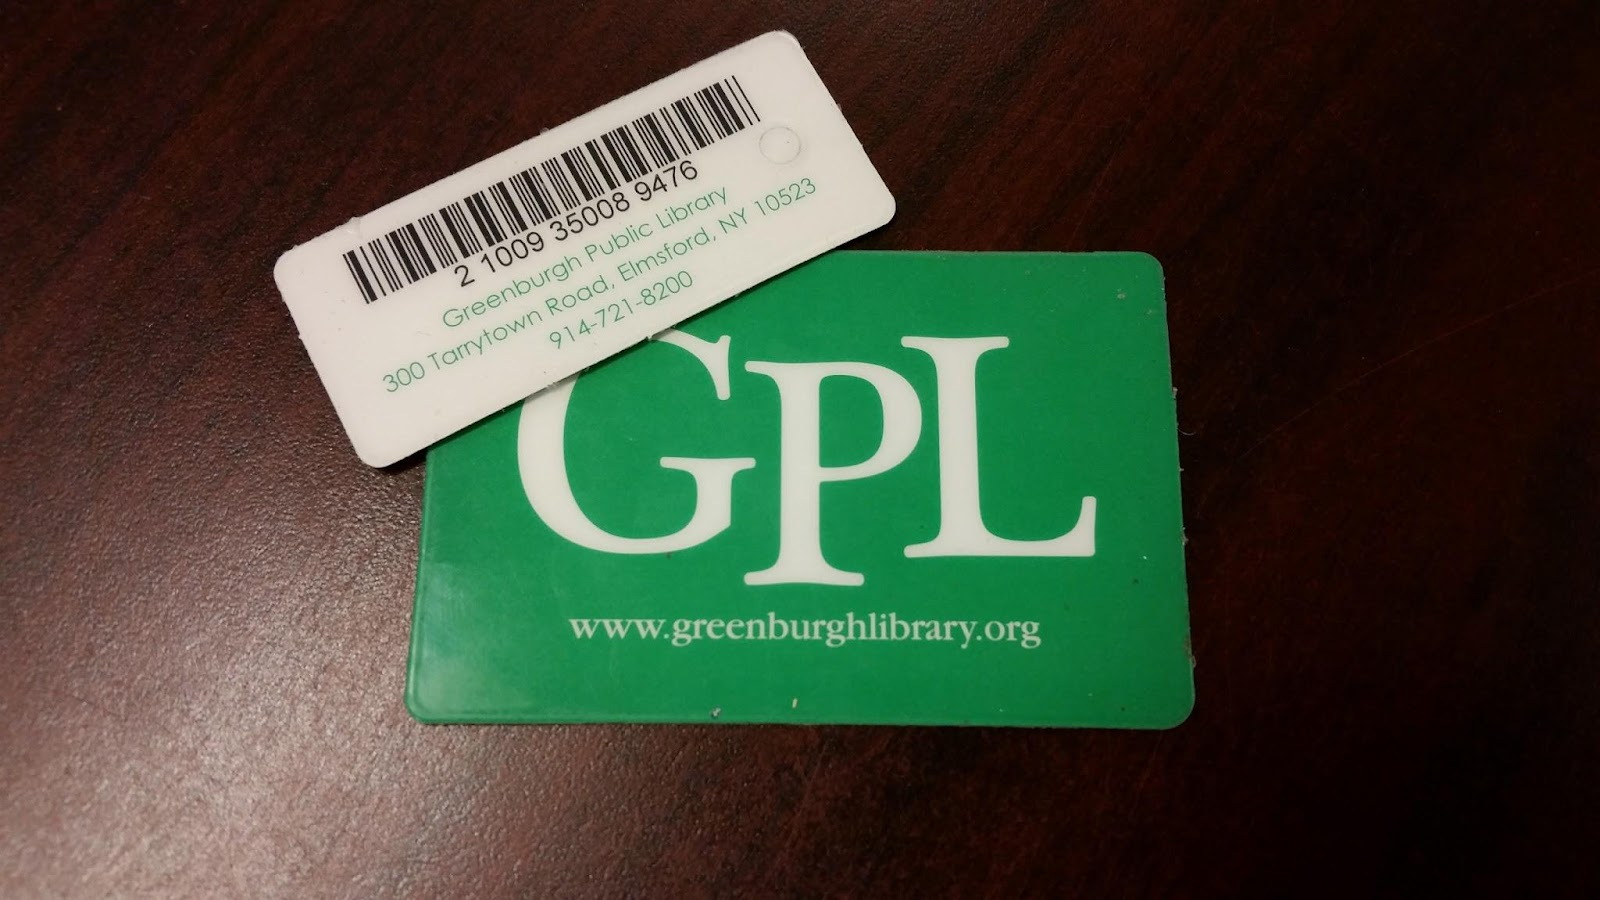 Did You Know That Your Library Card Gives You Access To All The Things In The Westchester Library System